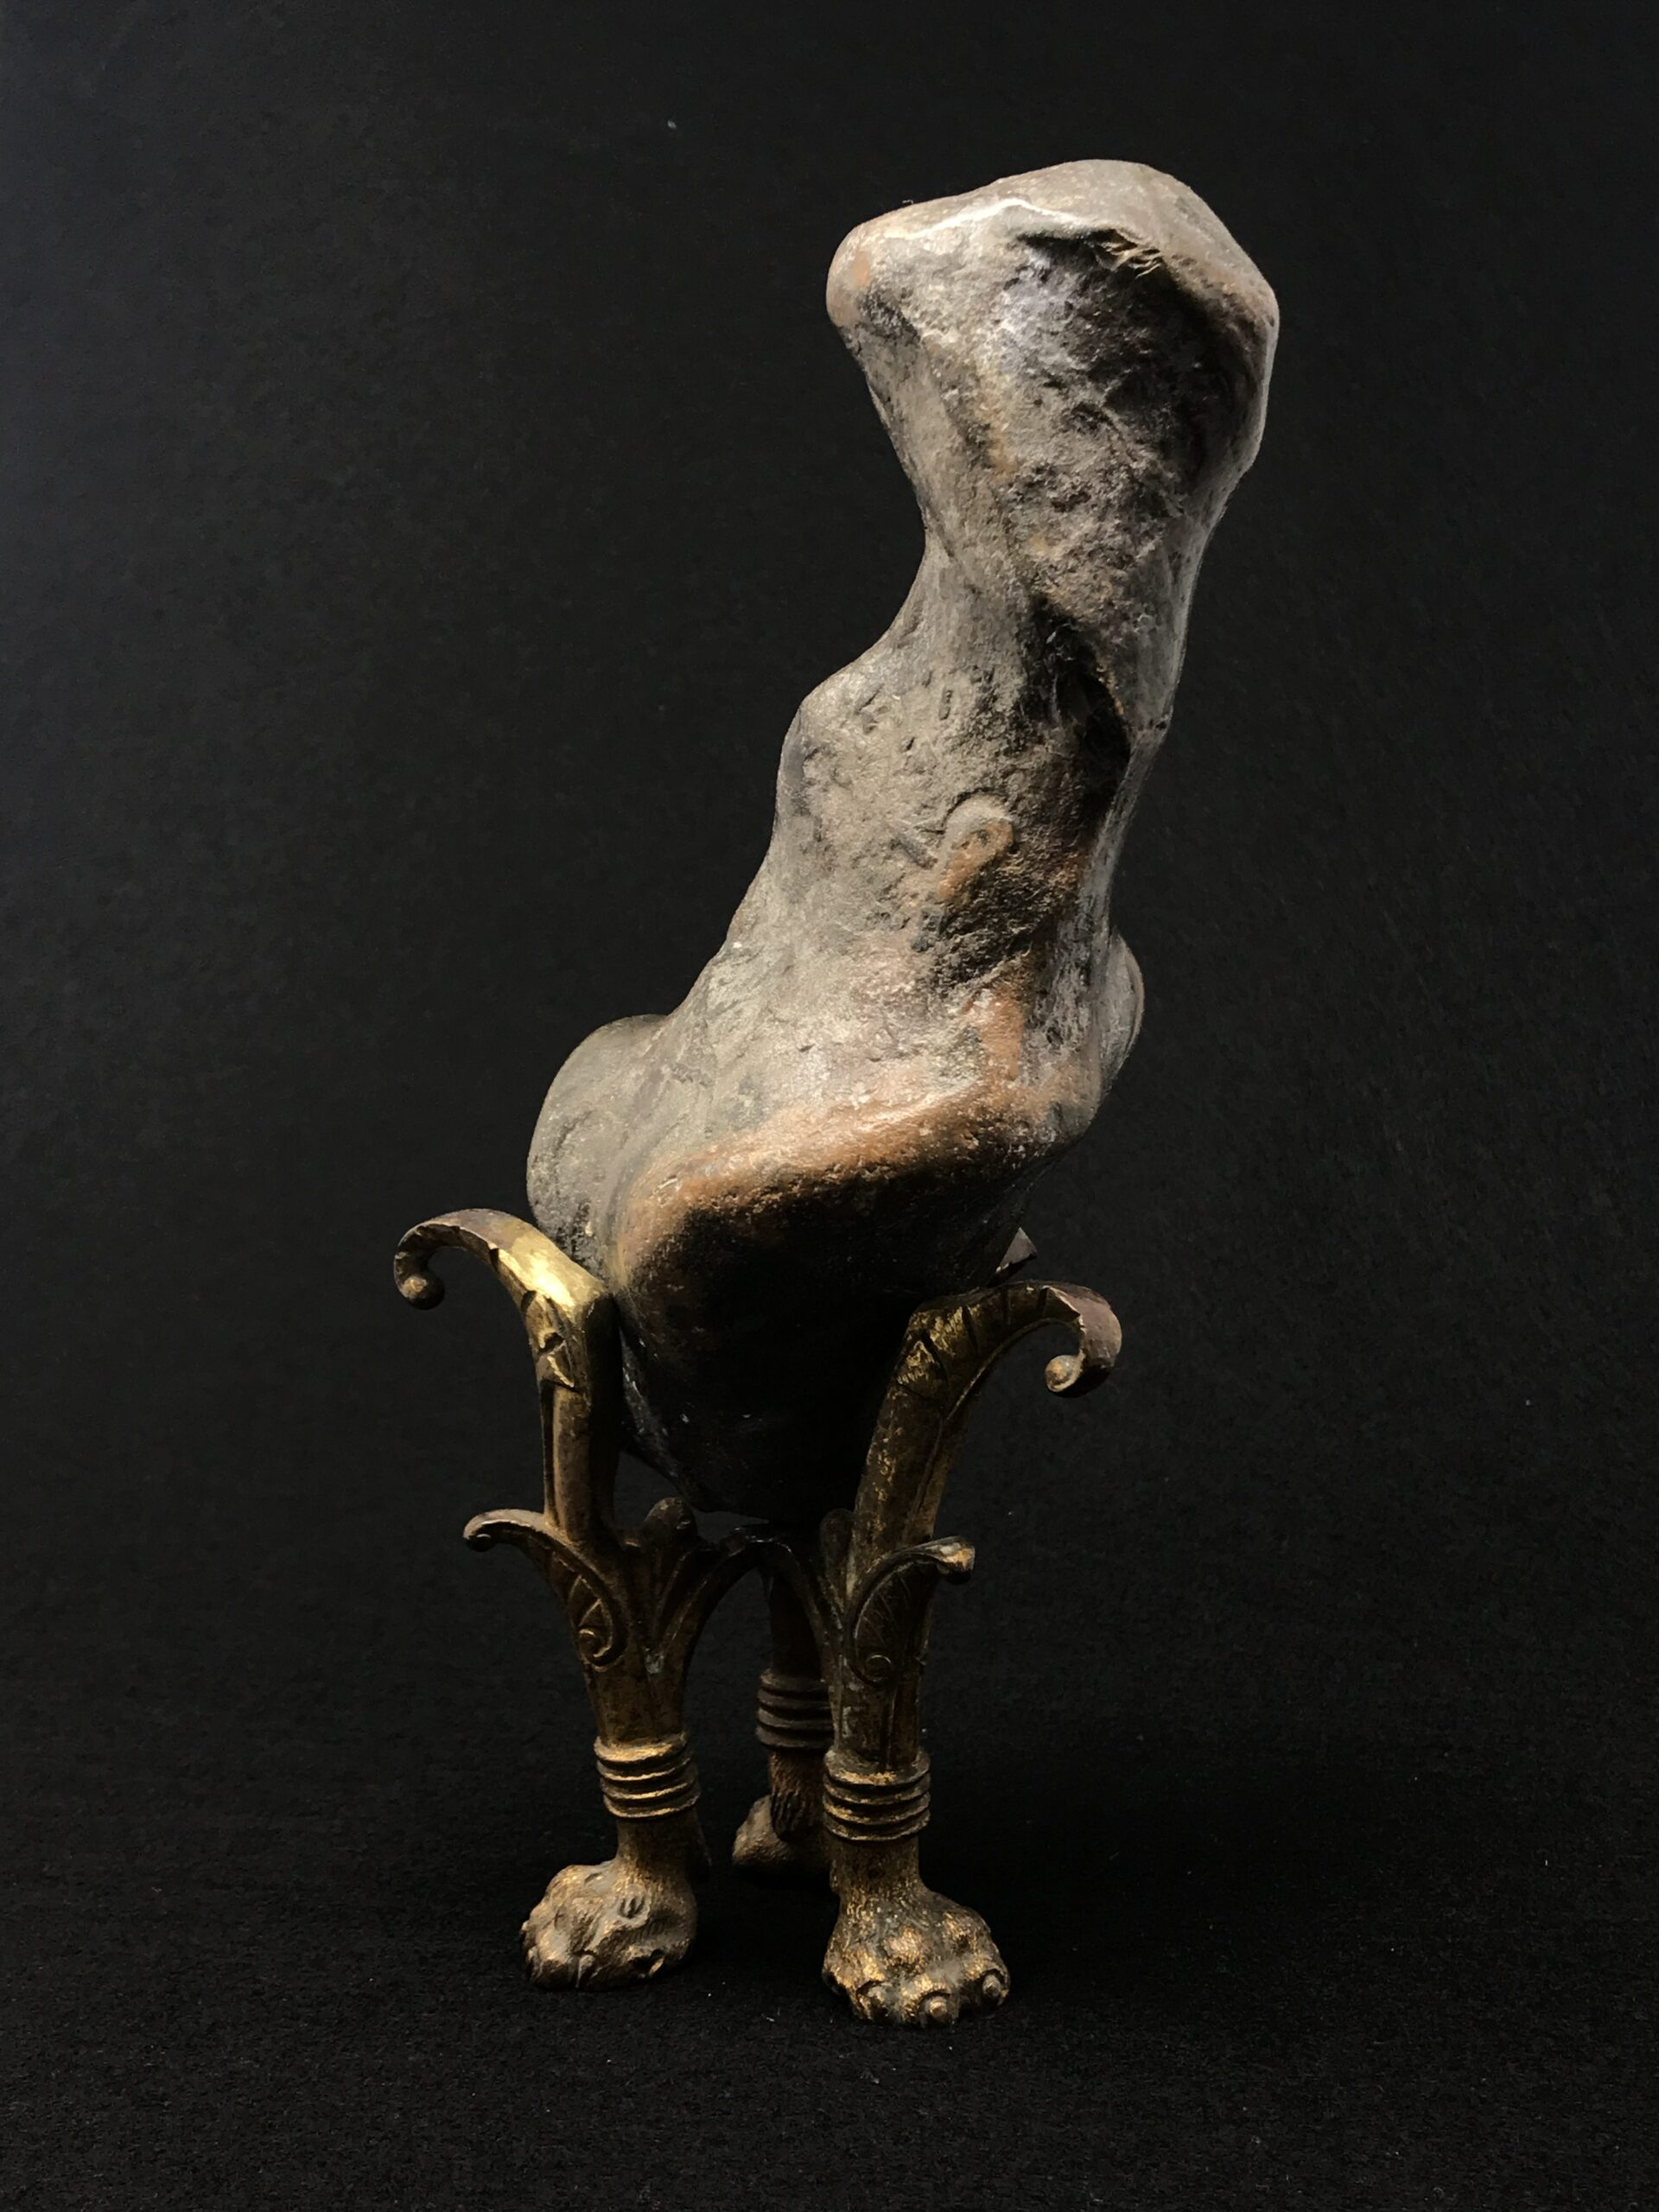 Collecting: a rock creature peers out of the gloom from his ornate gilded legs